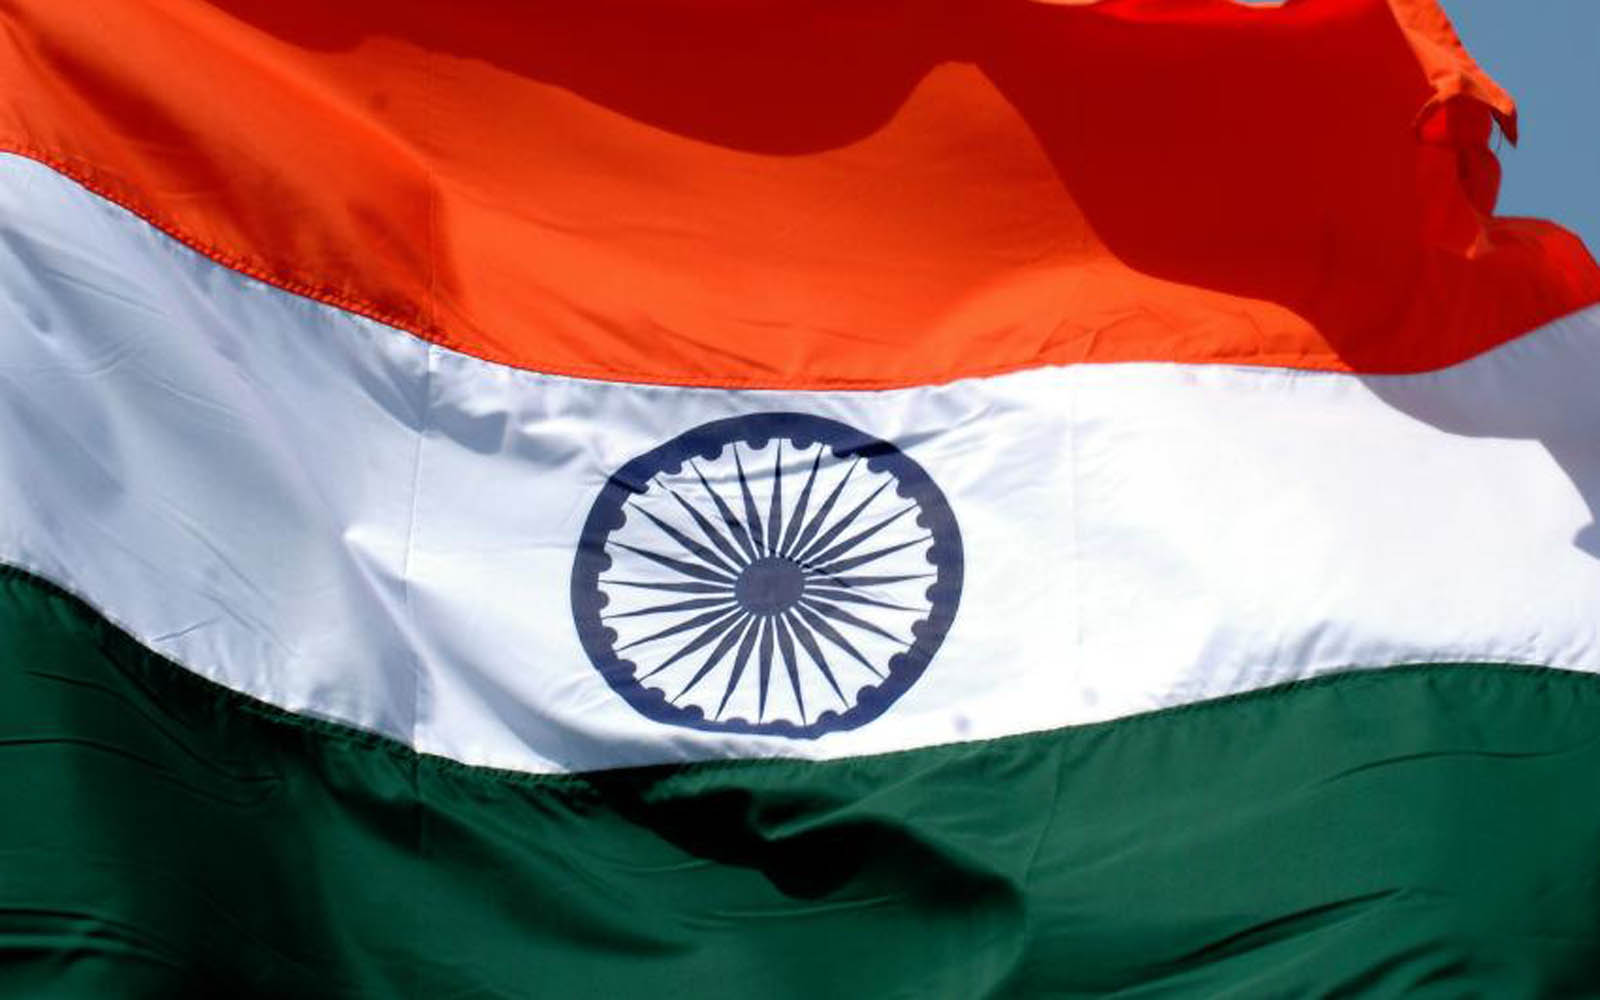 Indian Flag Images Hd720p: Indian Flag Wallpapers & HD Images 2018 [Free Download]